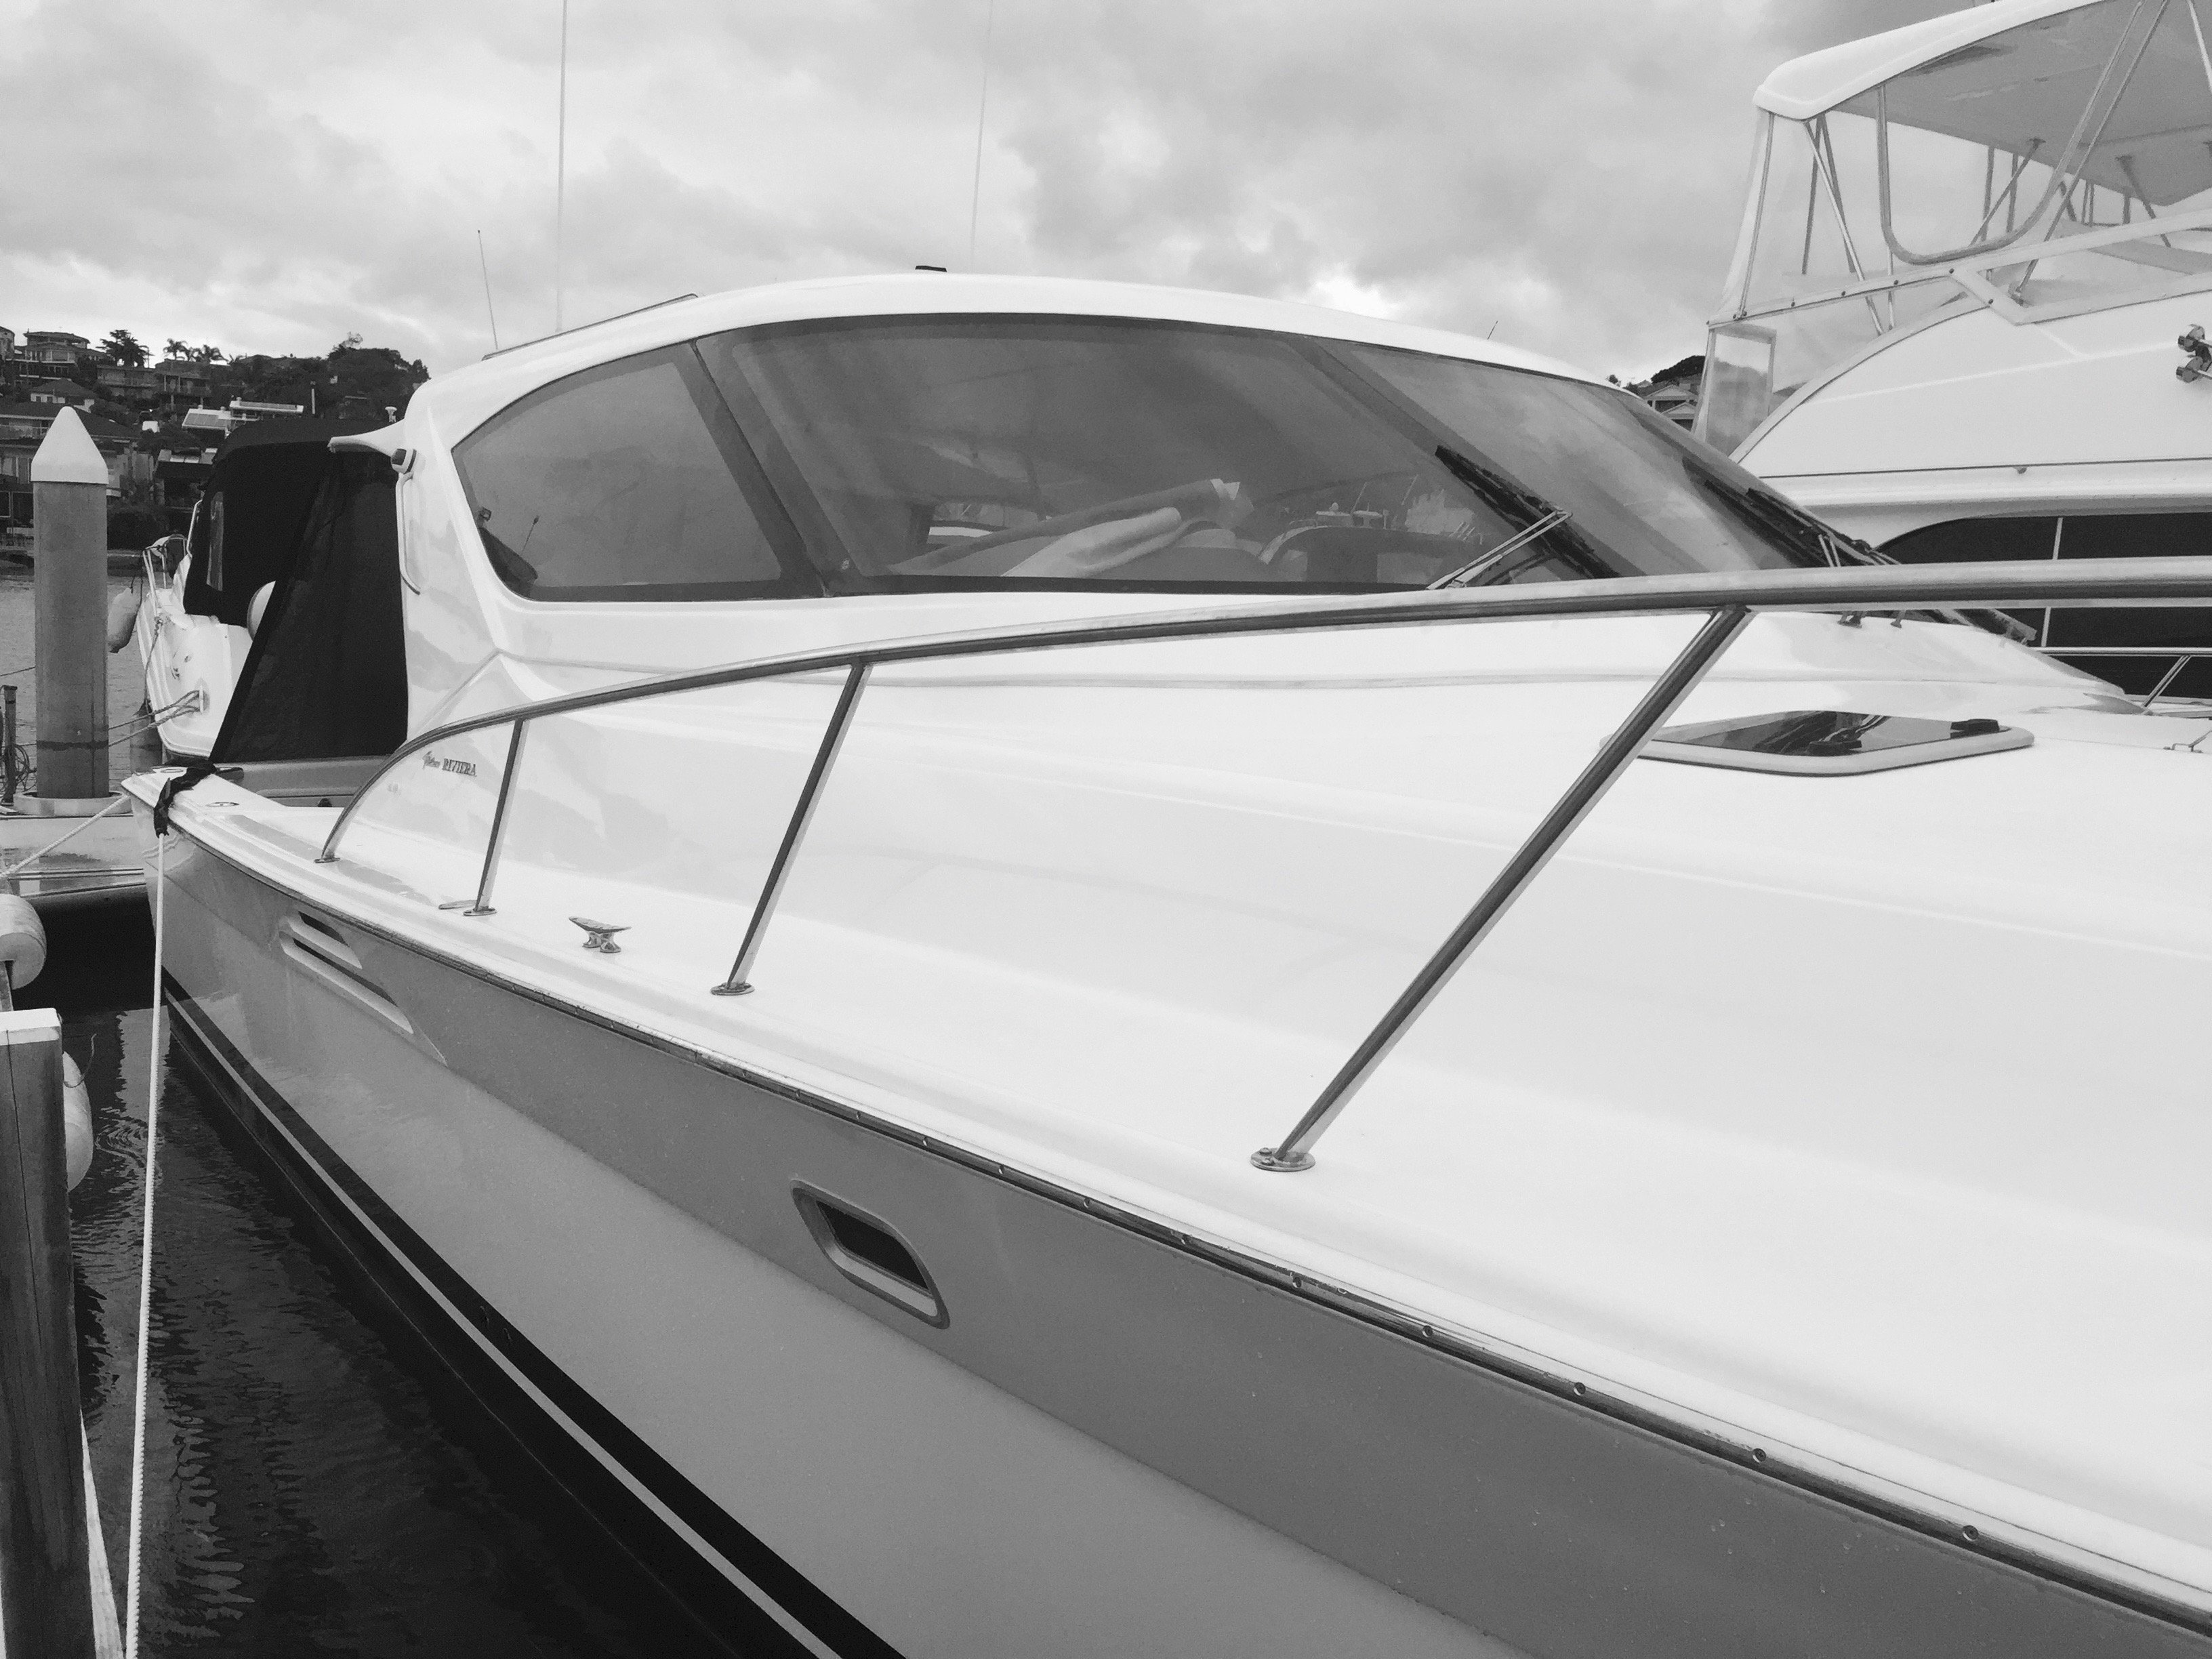 Luxury Boat Detailing and Polishing in Sylvania Marina, Sydney